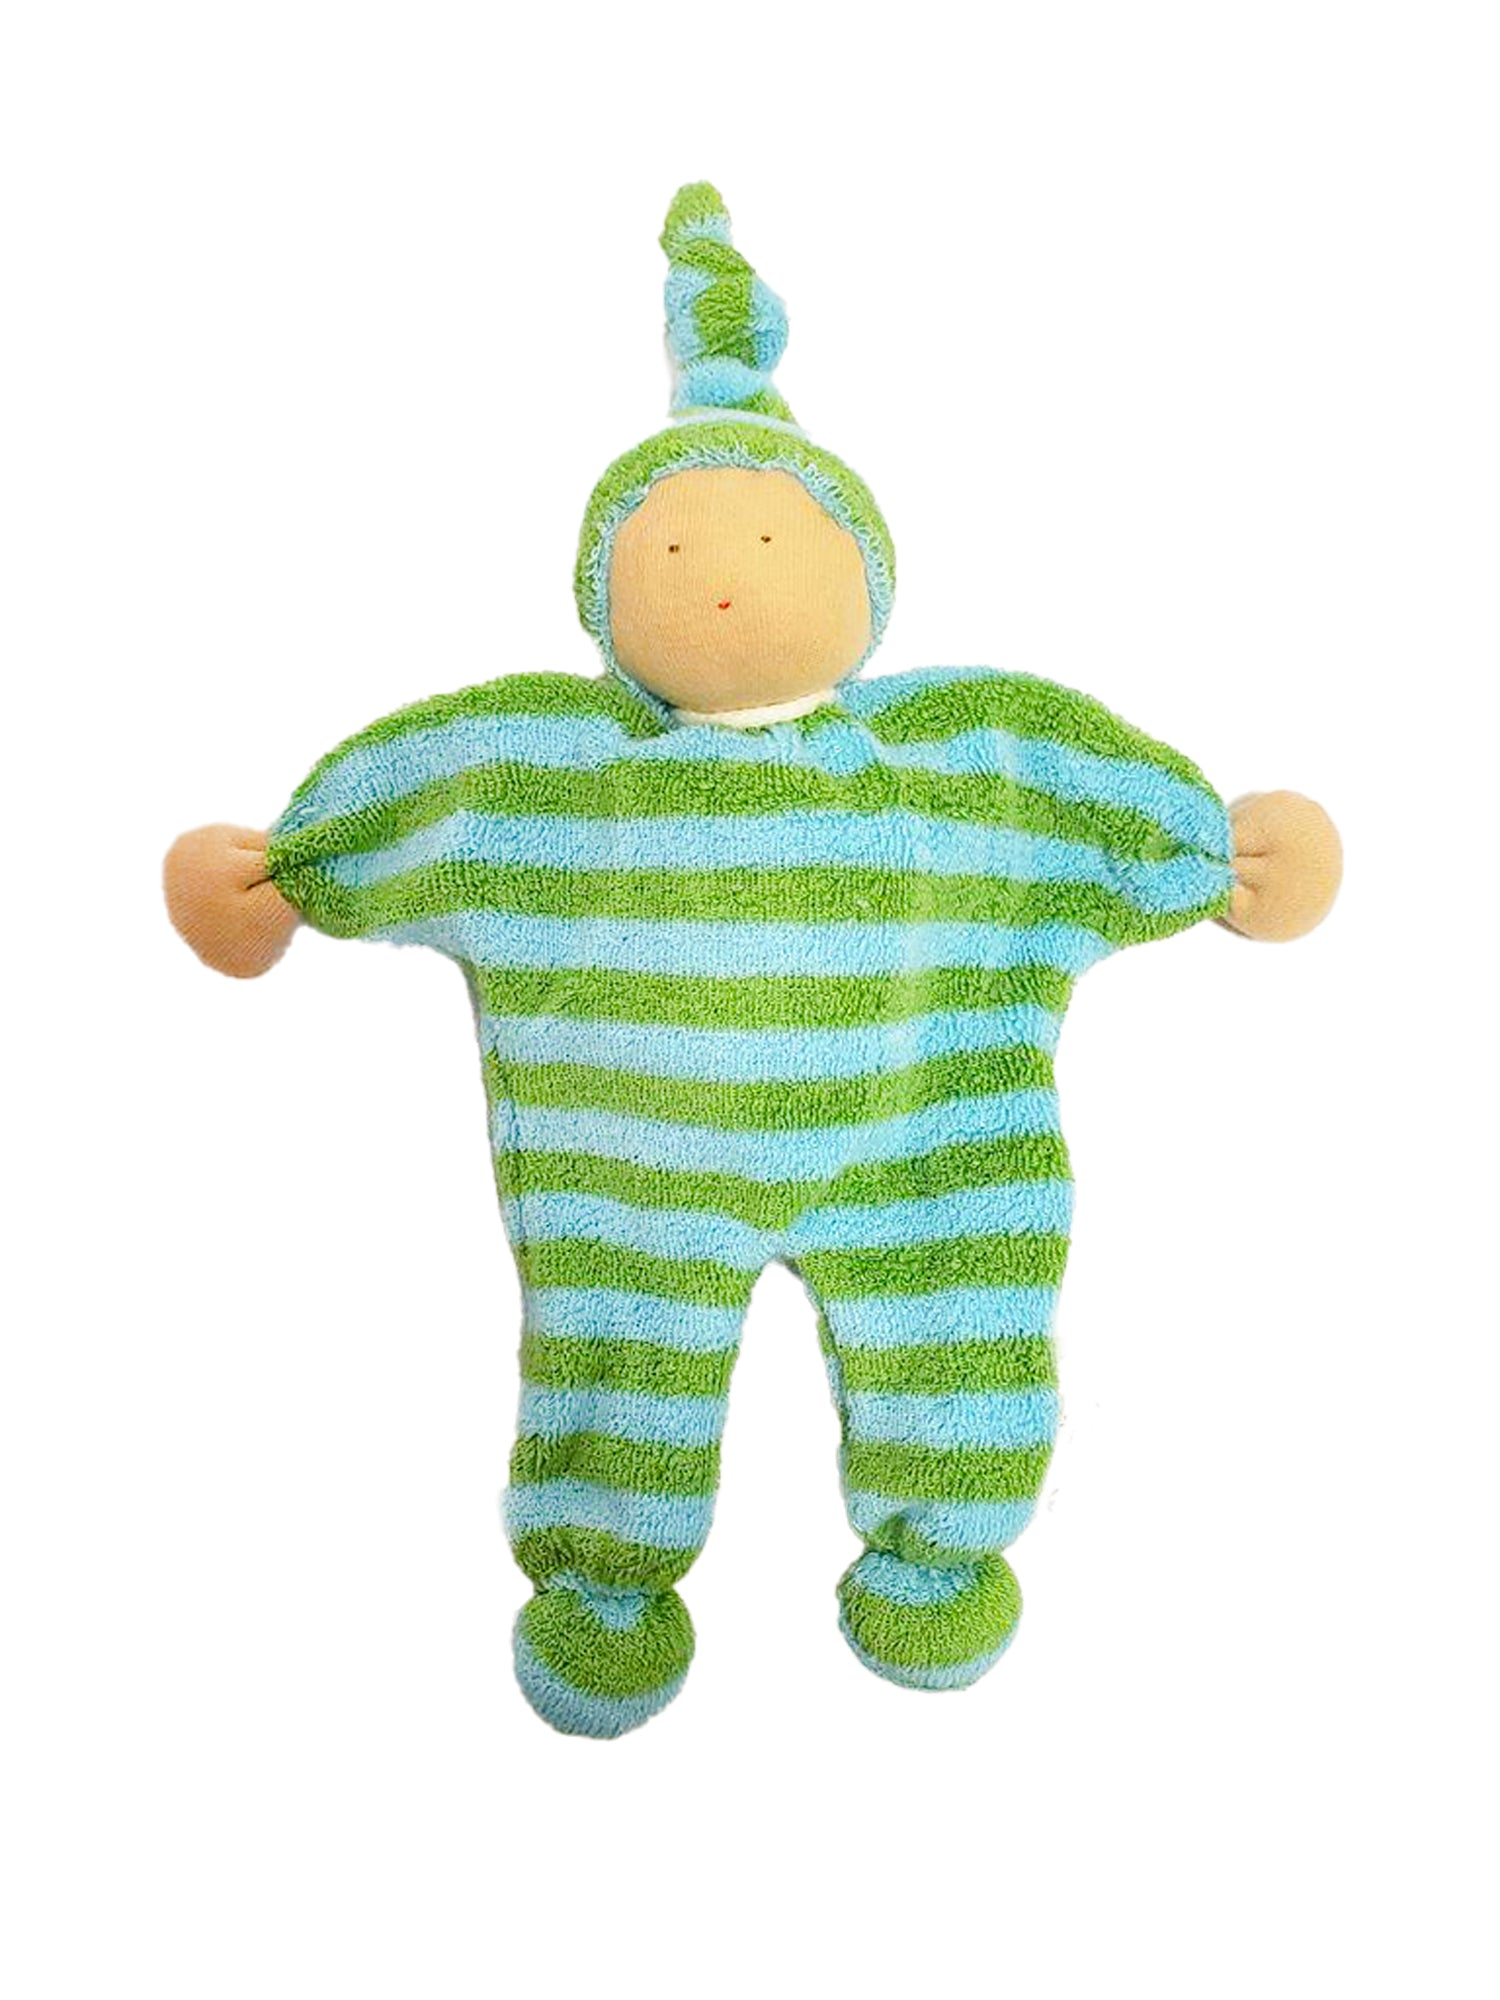 Baby Buddy Lovey - Assorted Colors